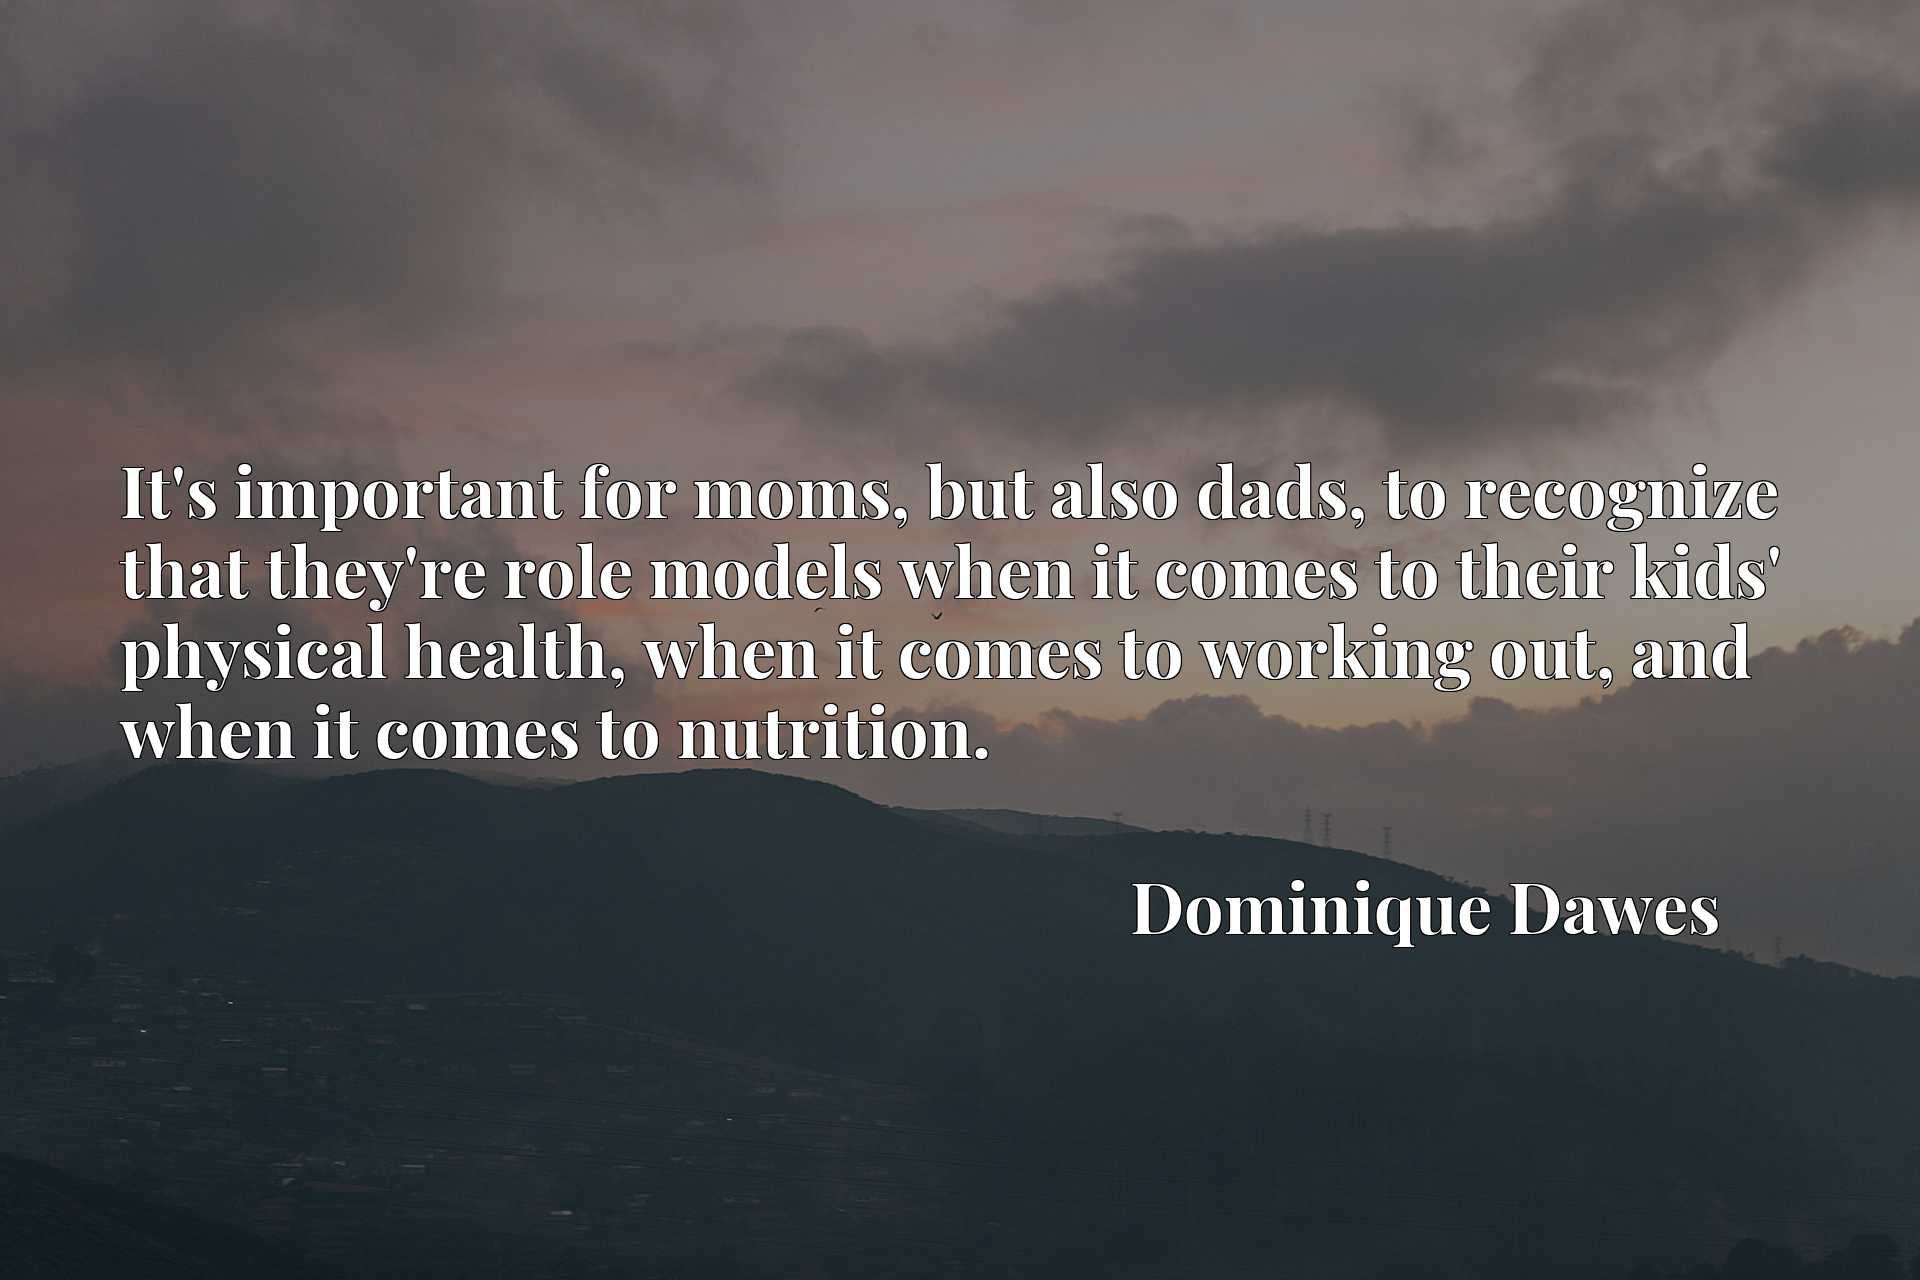 It's important for moms, but also dads, to recognize that they're role models when it comes to their kids' physical health, when it comes to working out, and when it comes to nutrition.